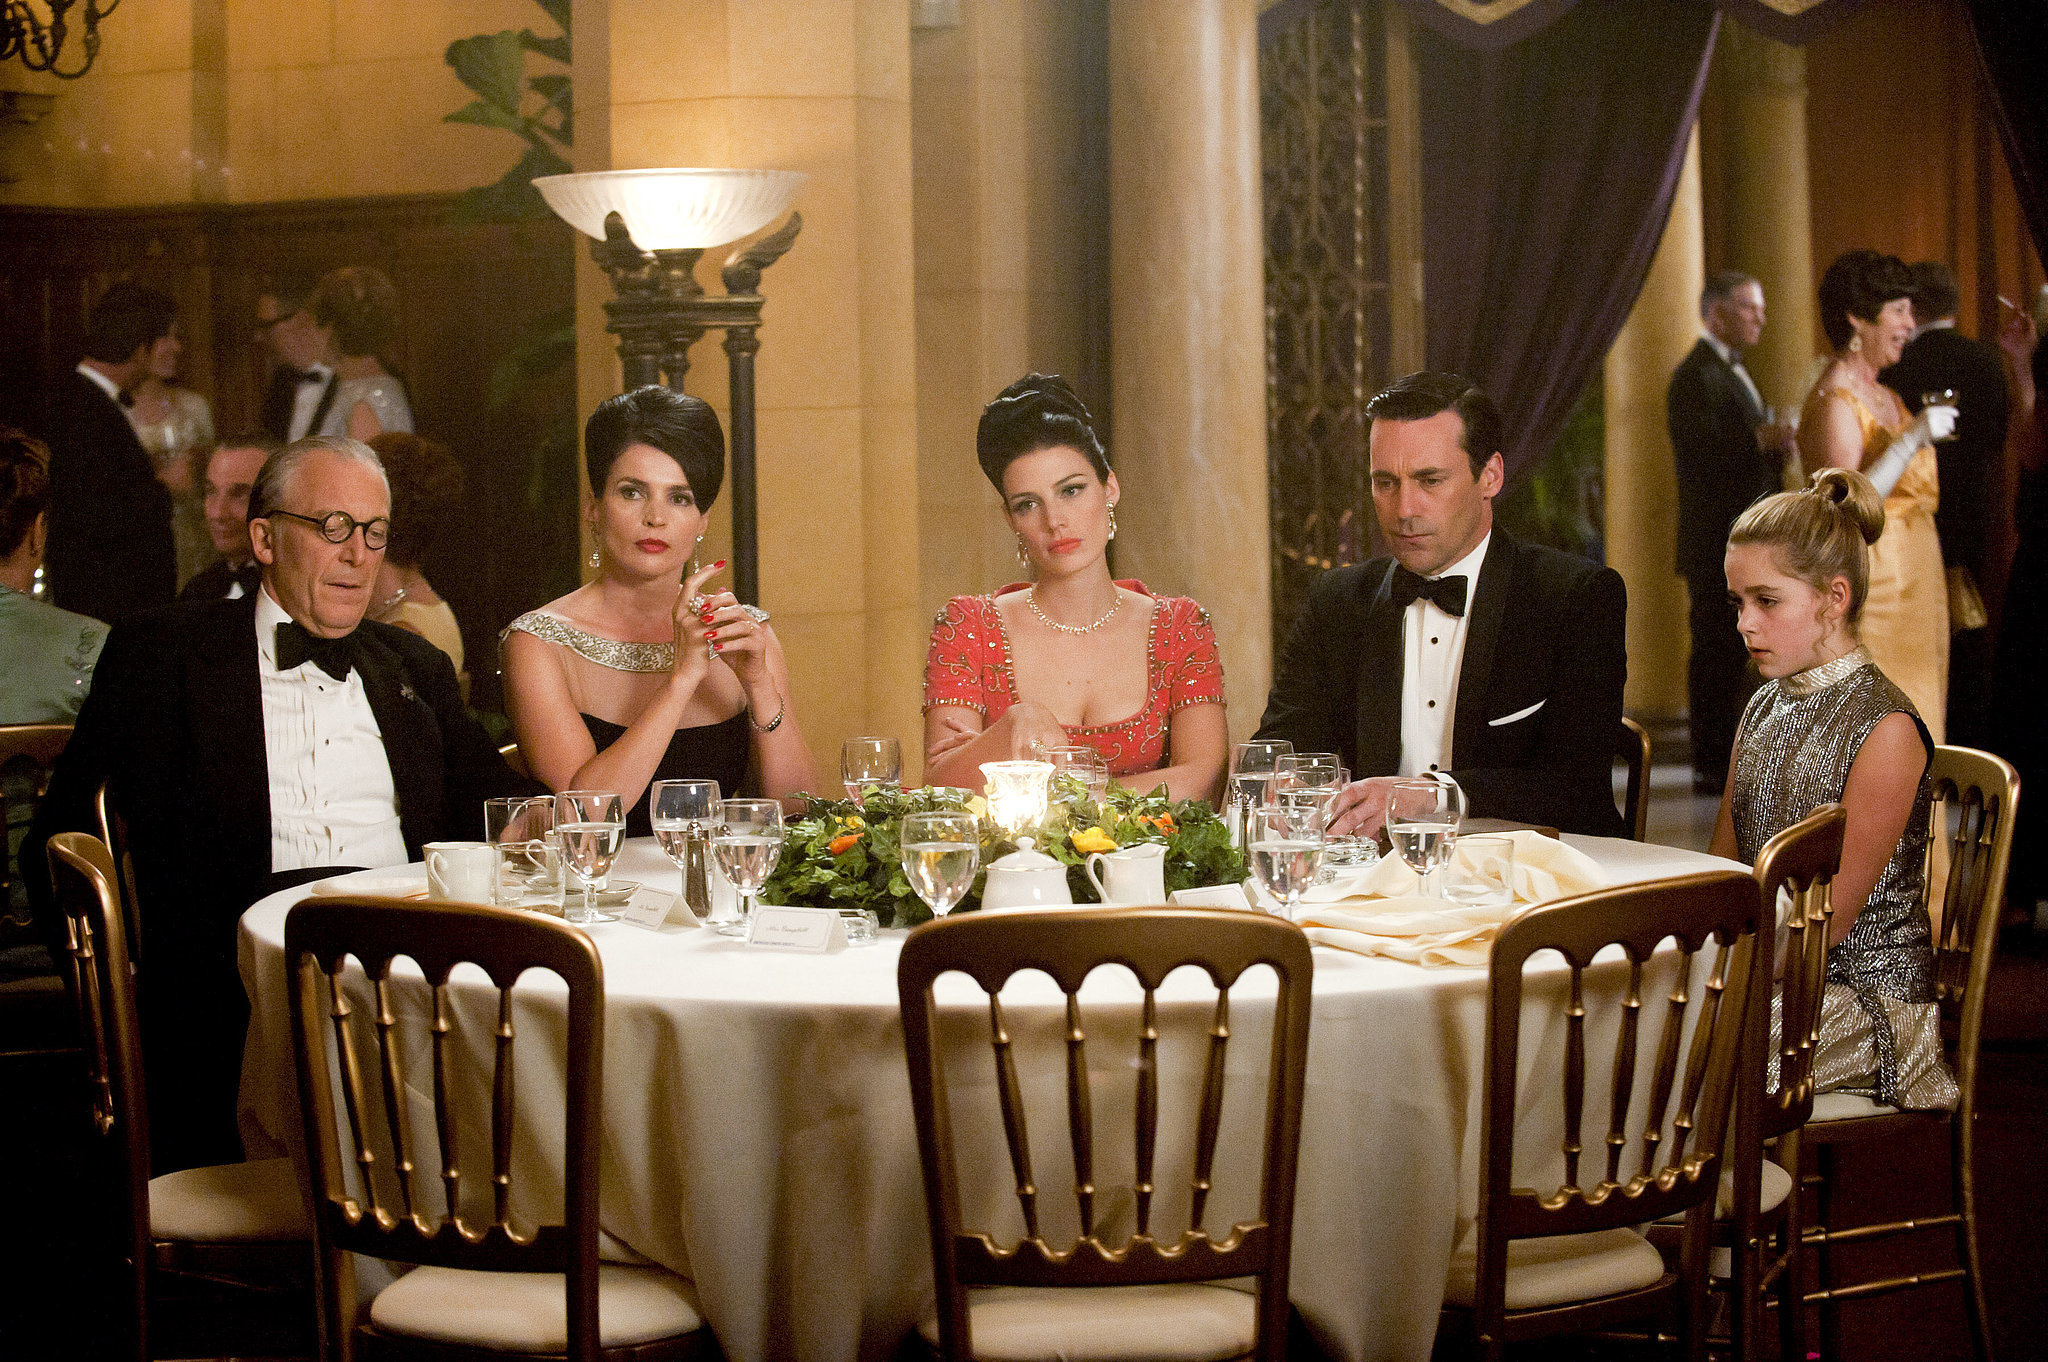 Unfortunately, Megan's mom and Roger Sterling are also at the dinner, and Sally walks in on them having . . . . relations. Though Don isn't involved, this is when Sally's trust in adults begins to shatter.